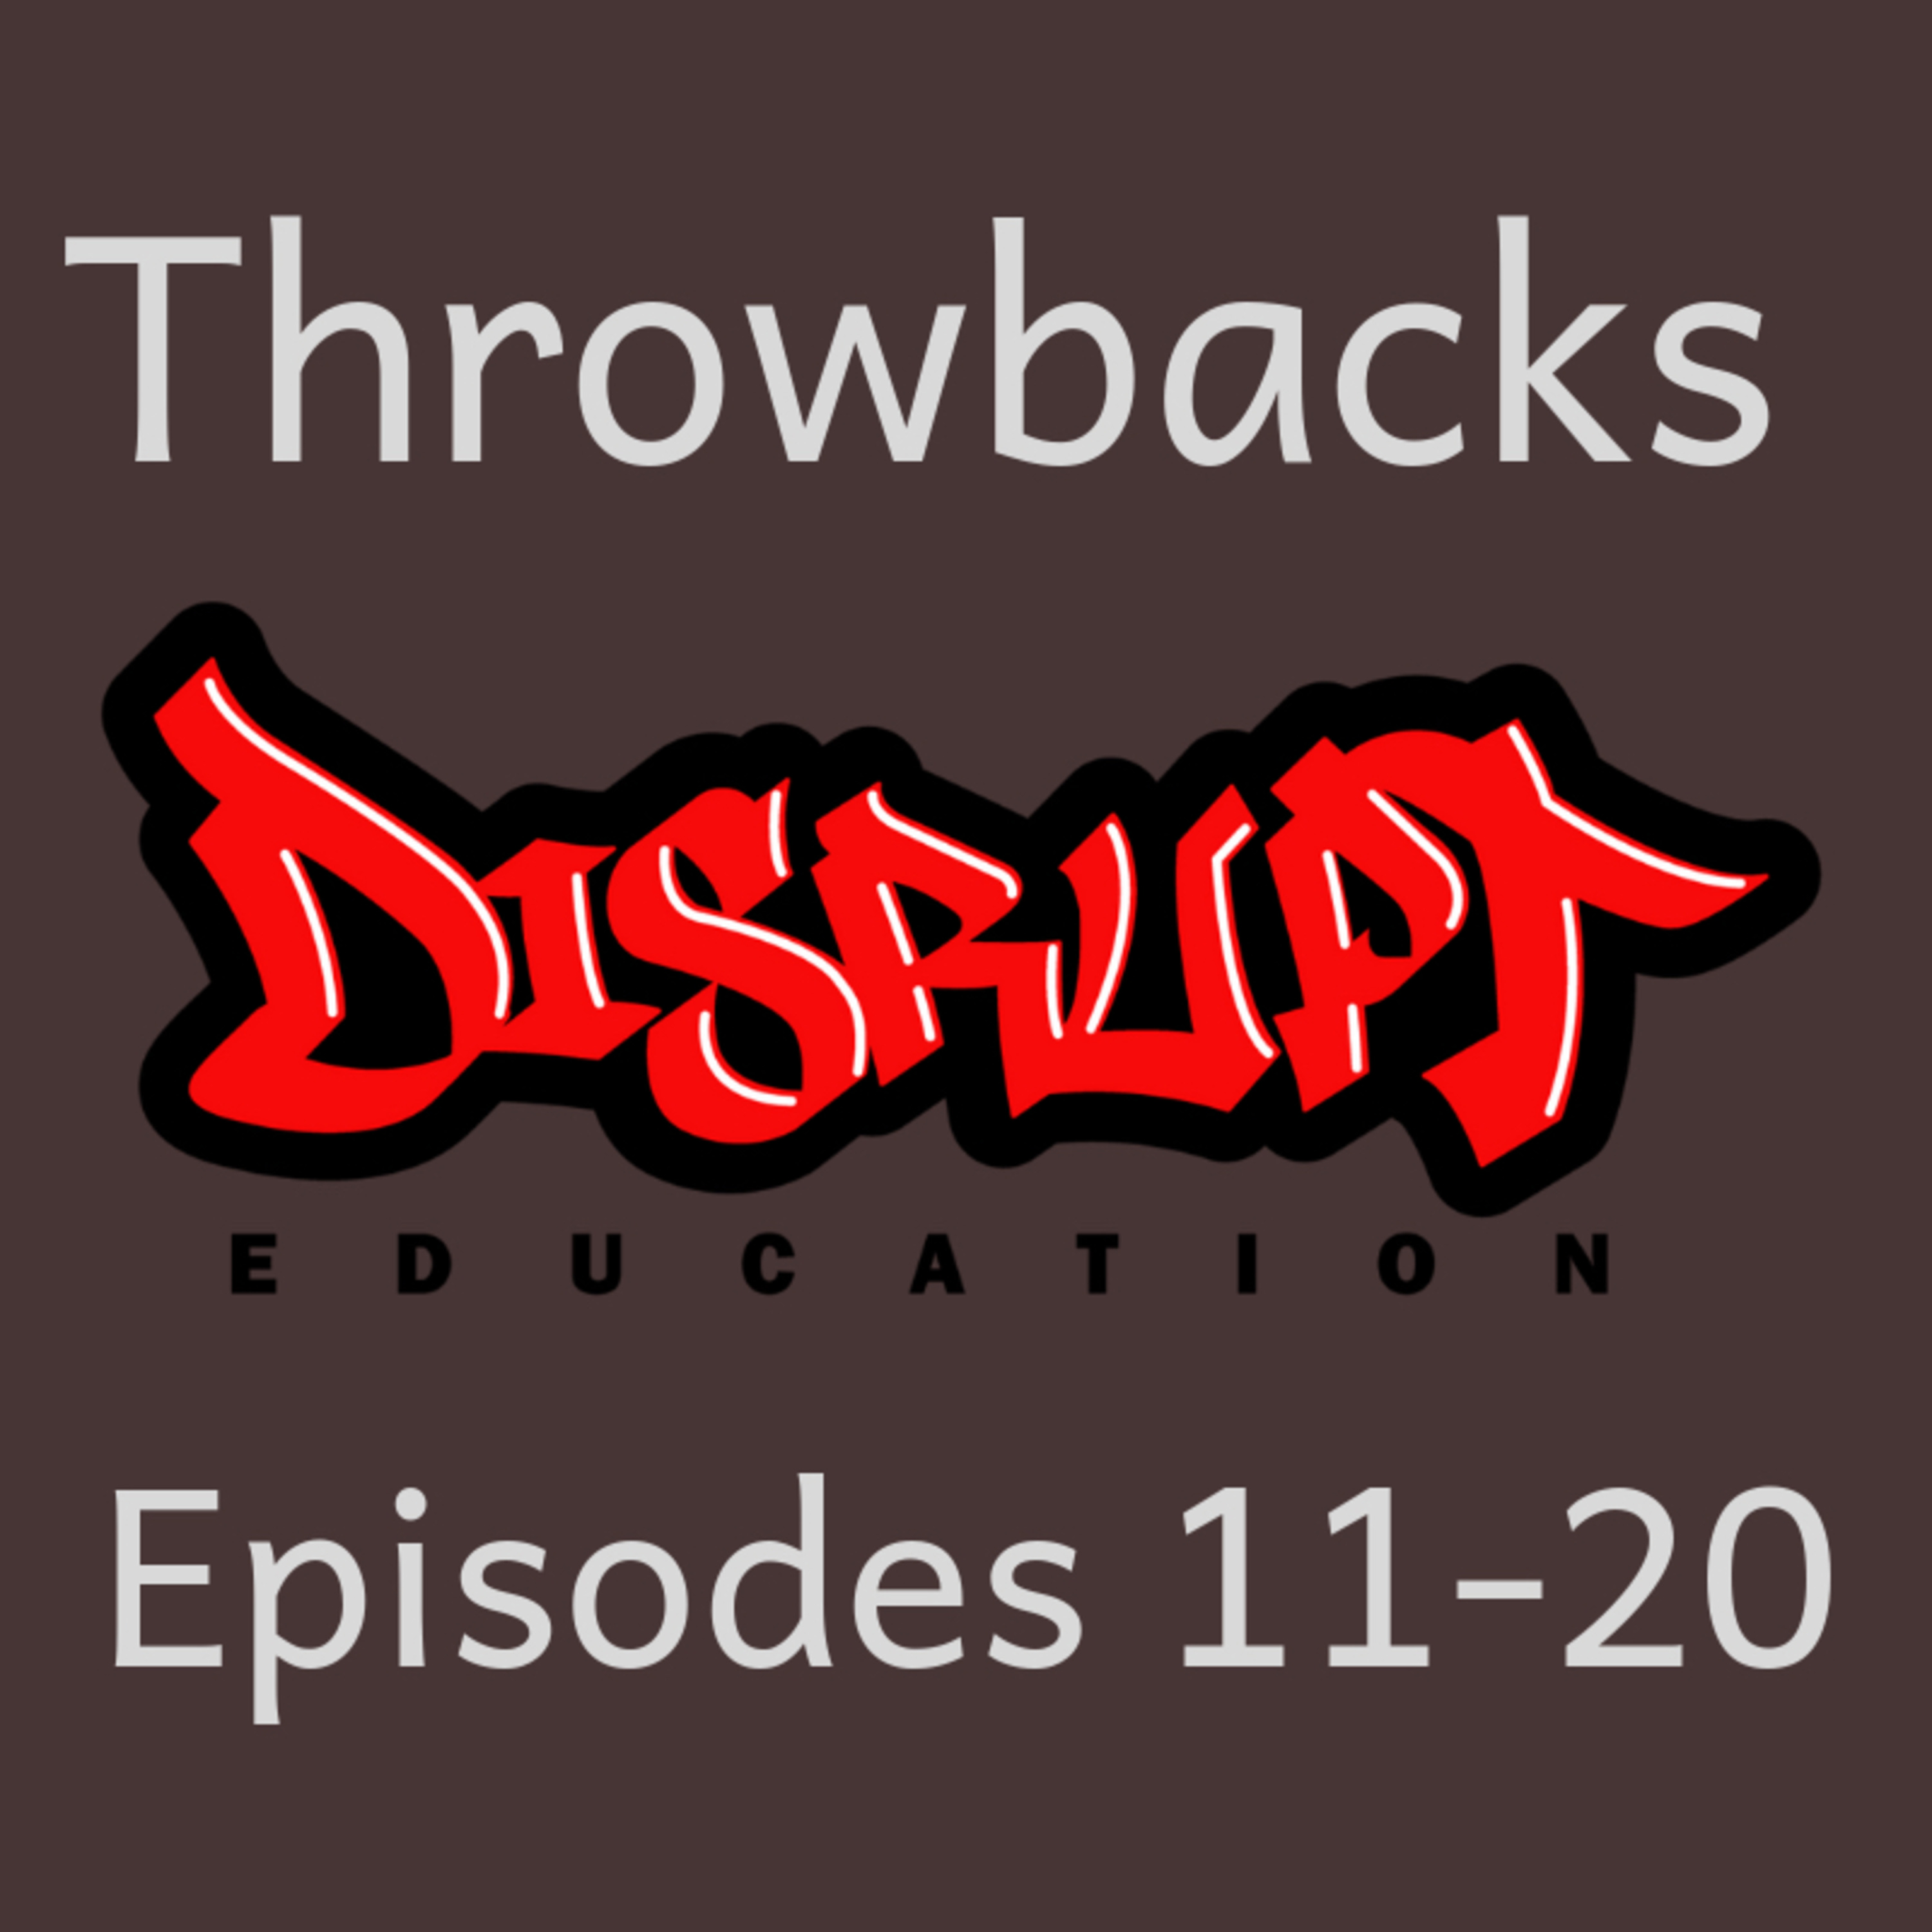 Disrupt Education Throwbacks Episodes 11-20